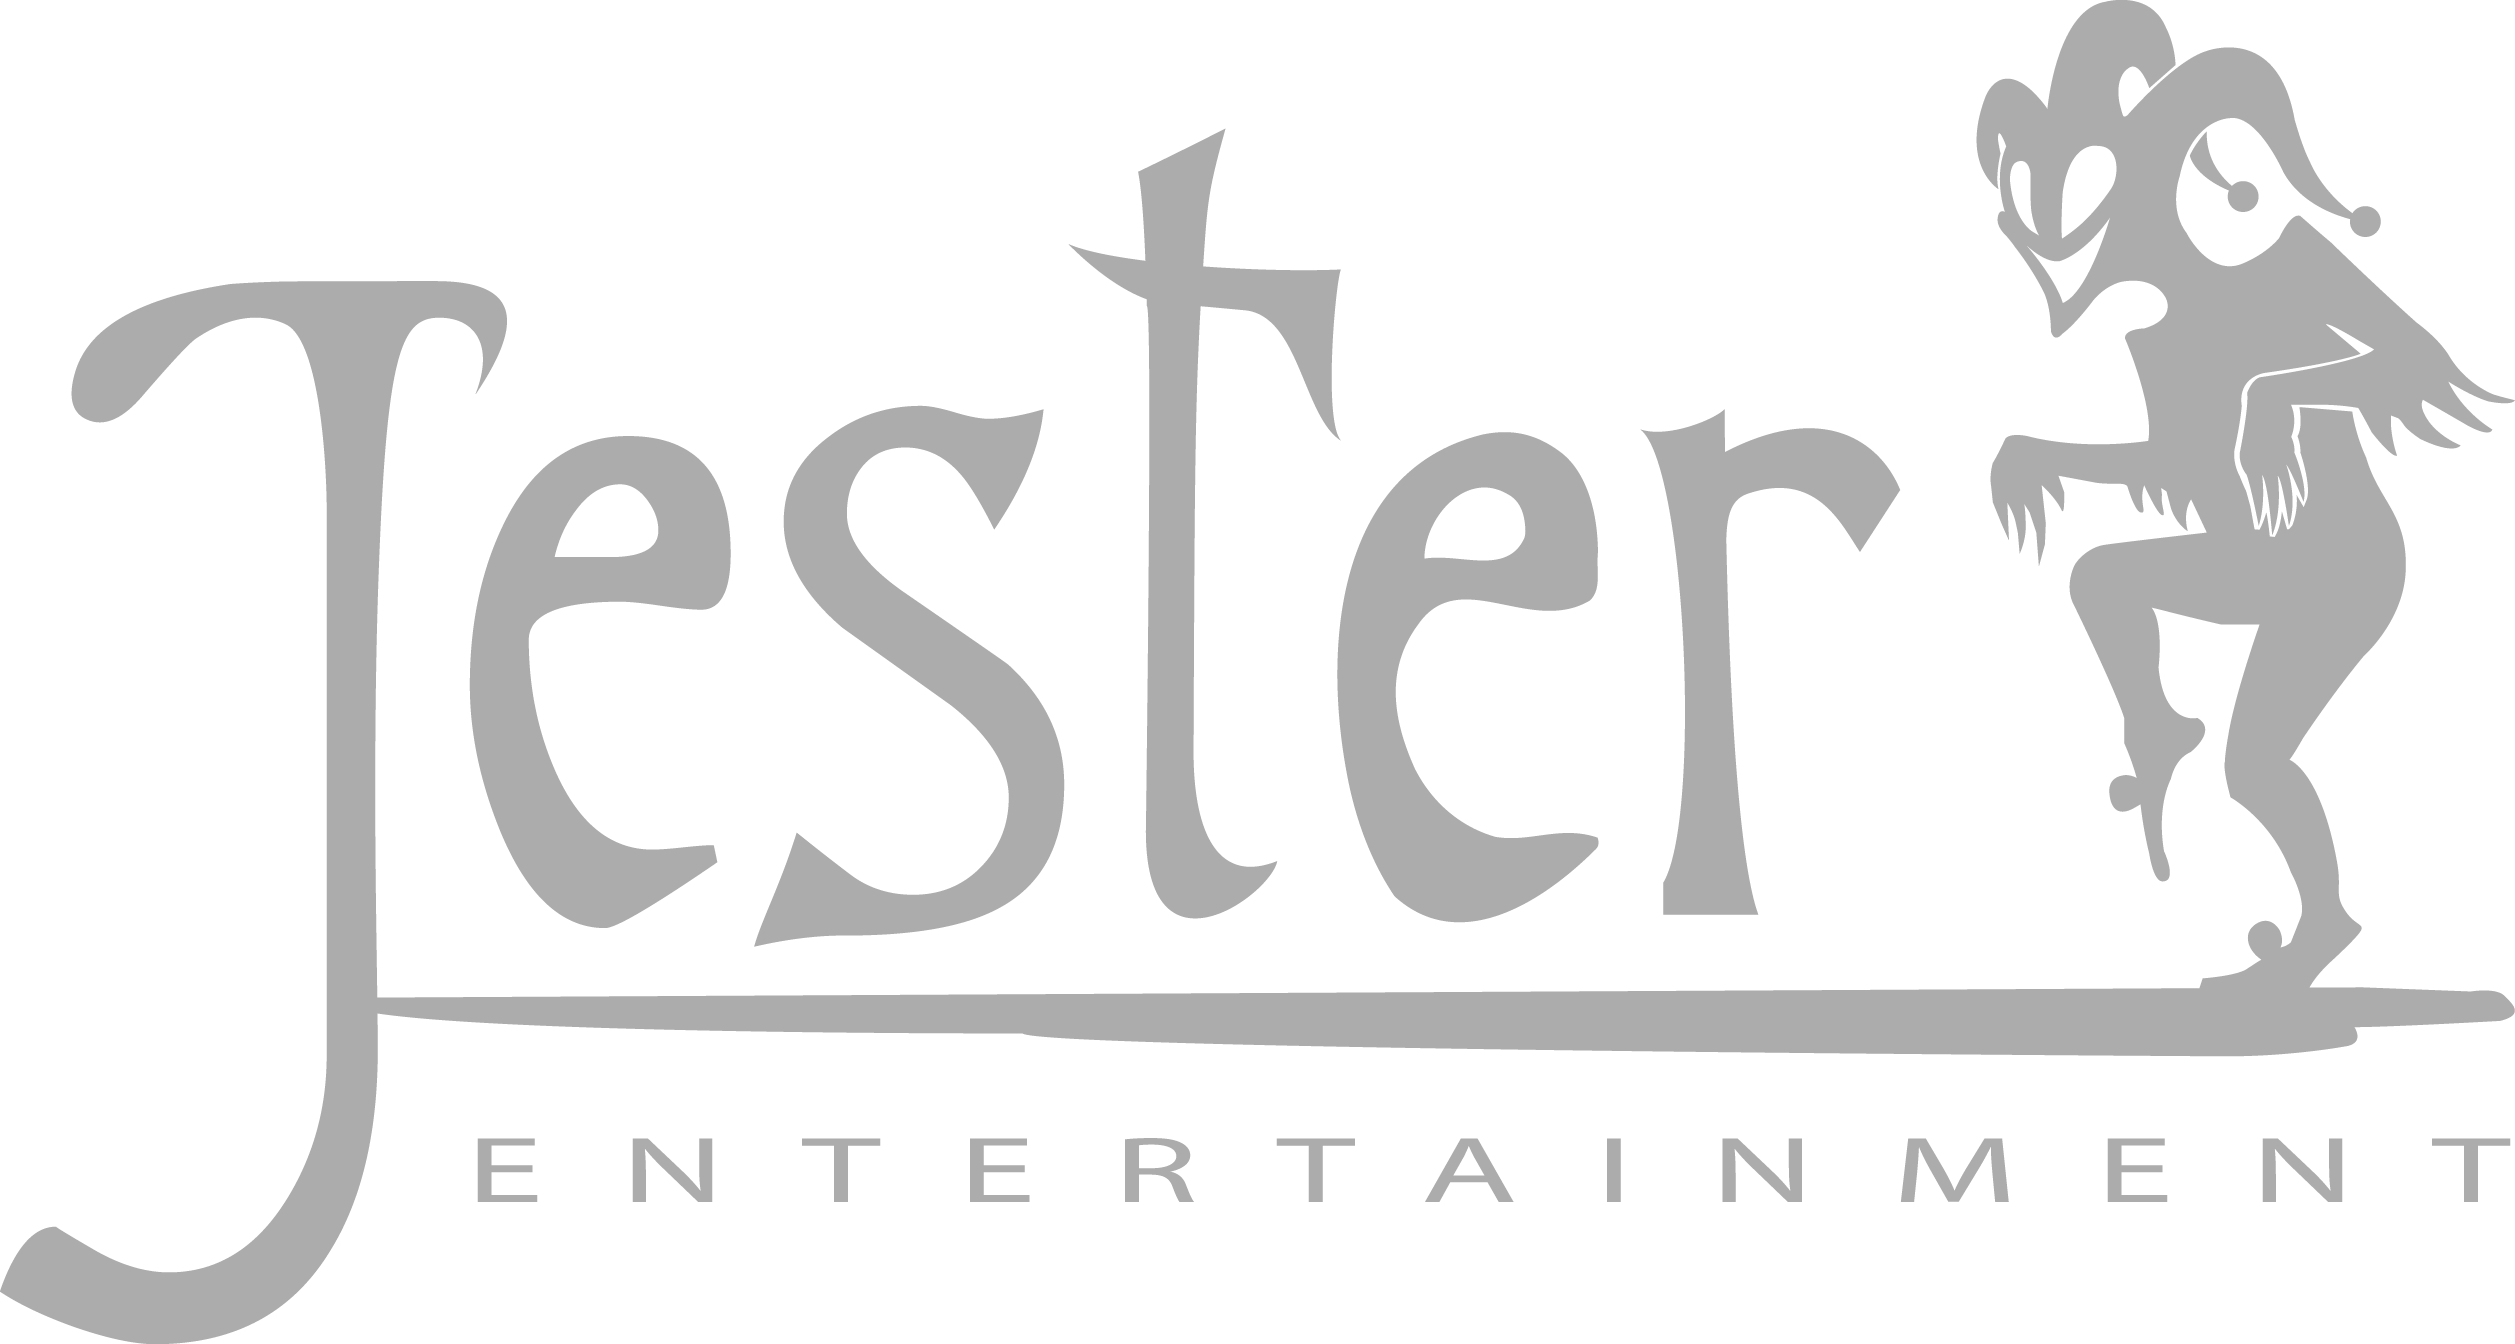 jester_logo_official-1.png